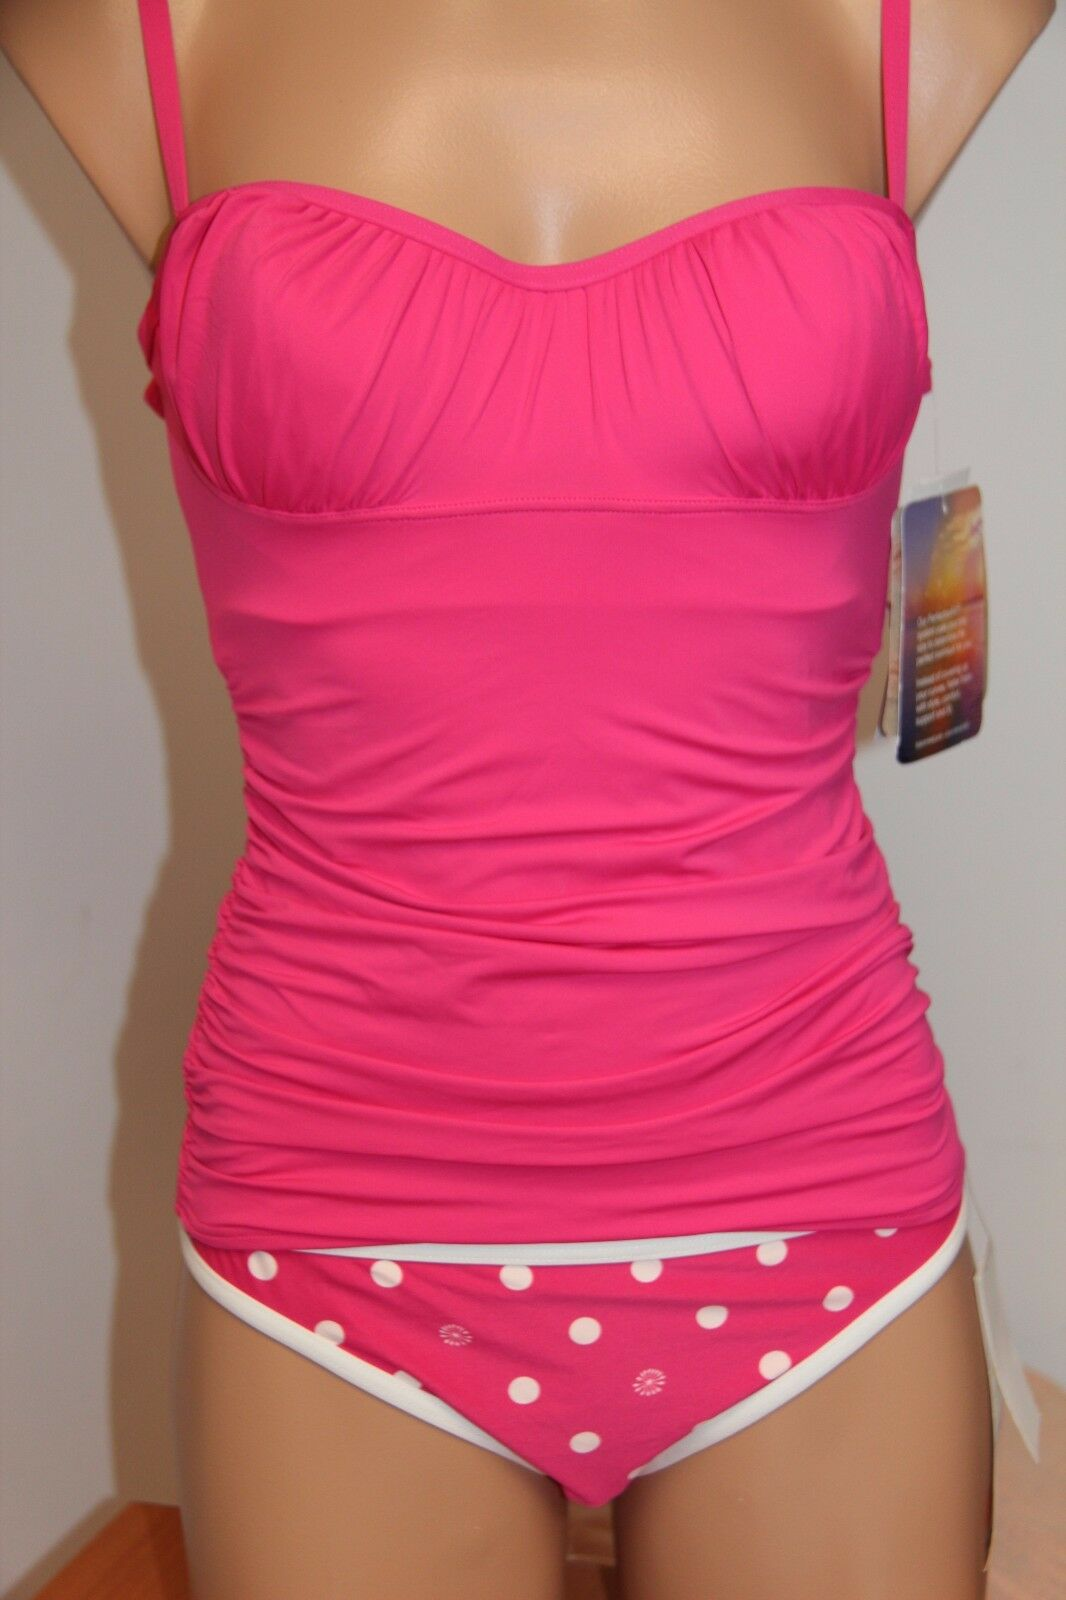 NWT Coco Rave Swimsuit Tankini 2pc set Size S 30 32C Cup S U-Wire Watermelon